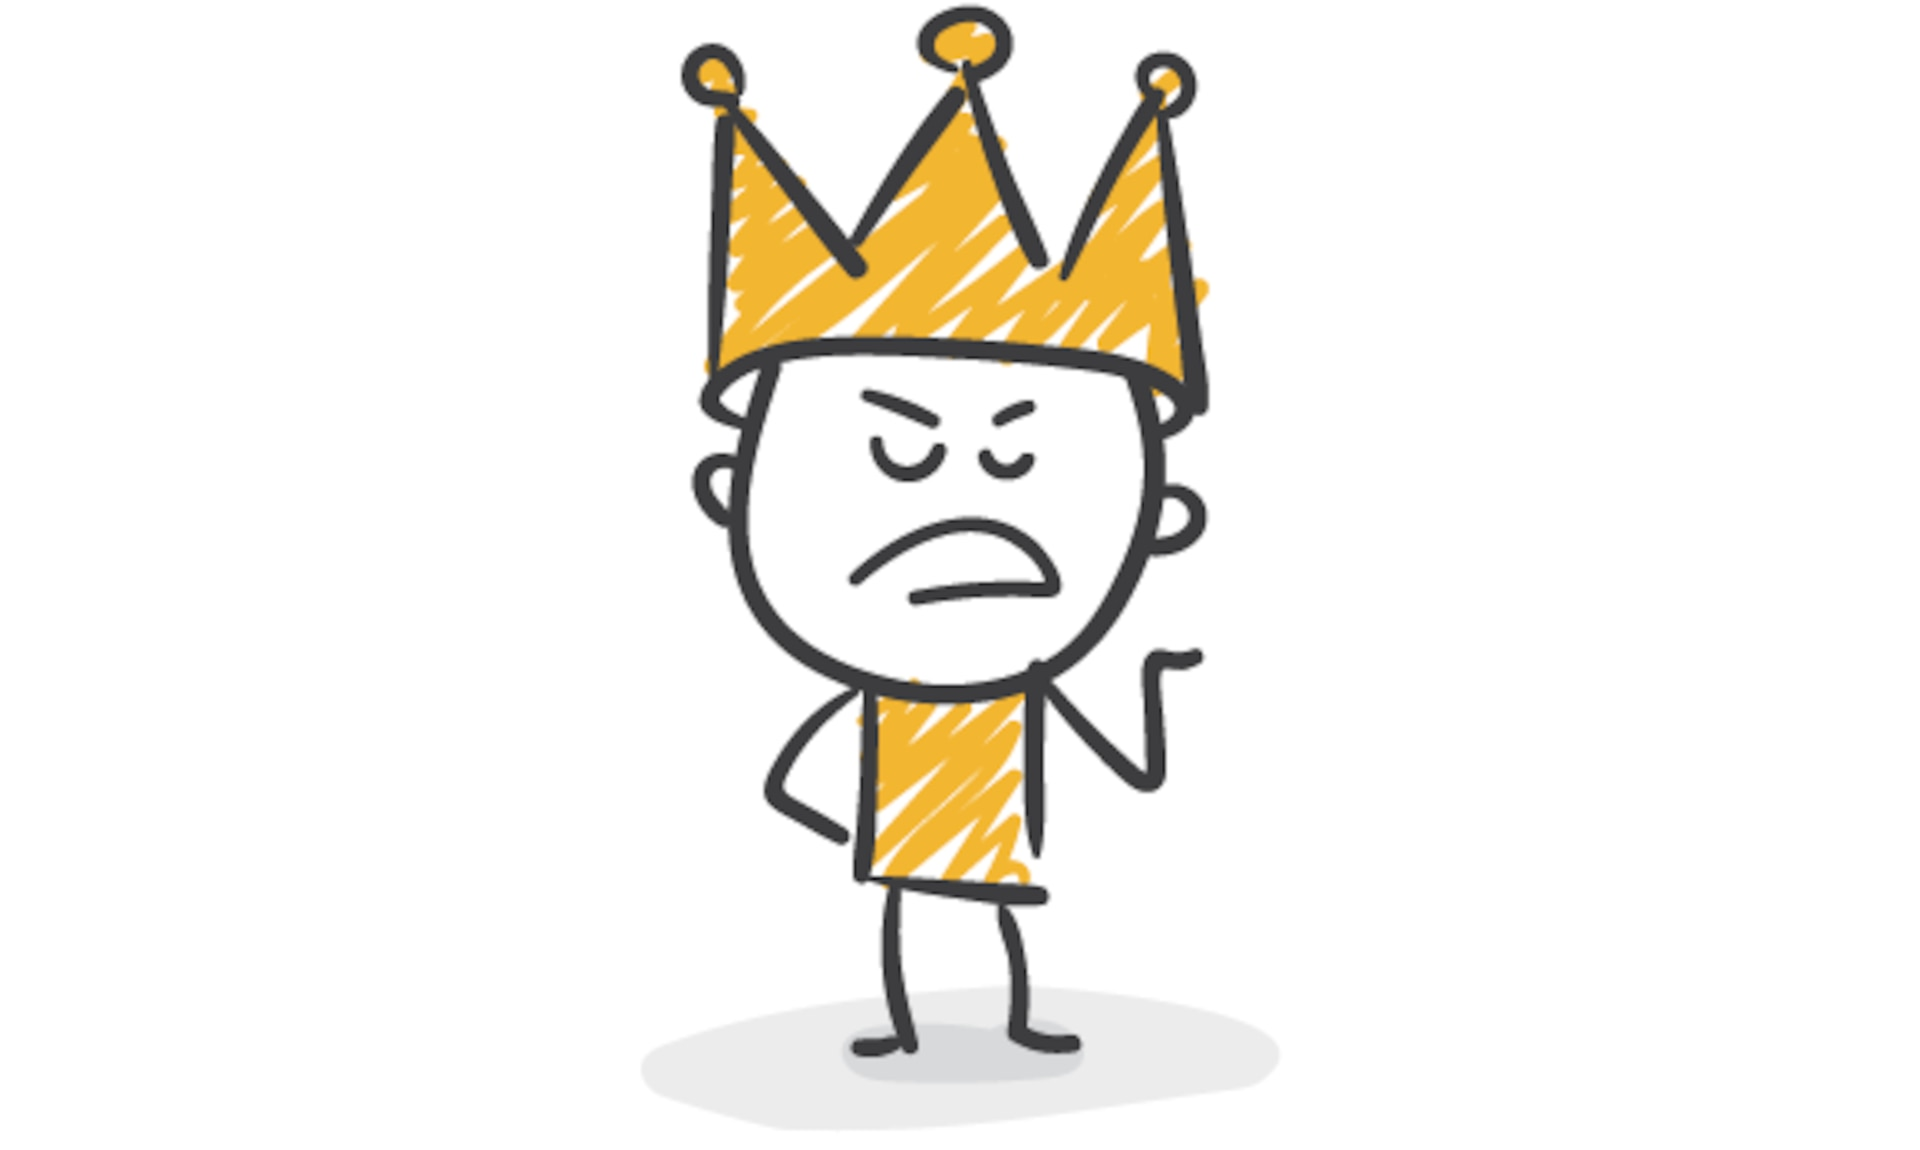 a graphic of a character with a crown on its head